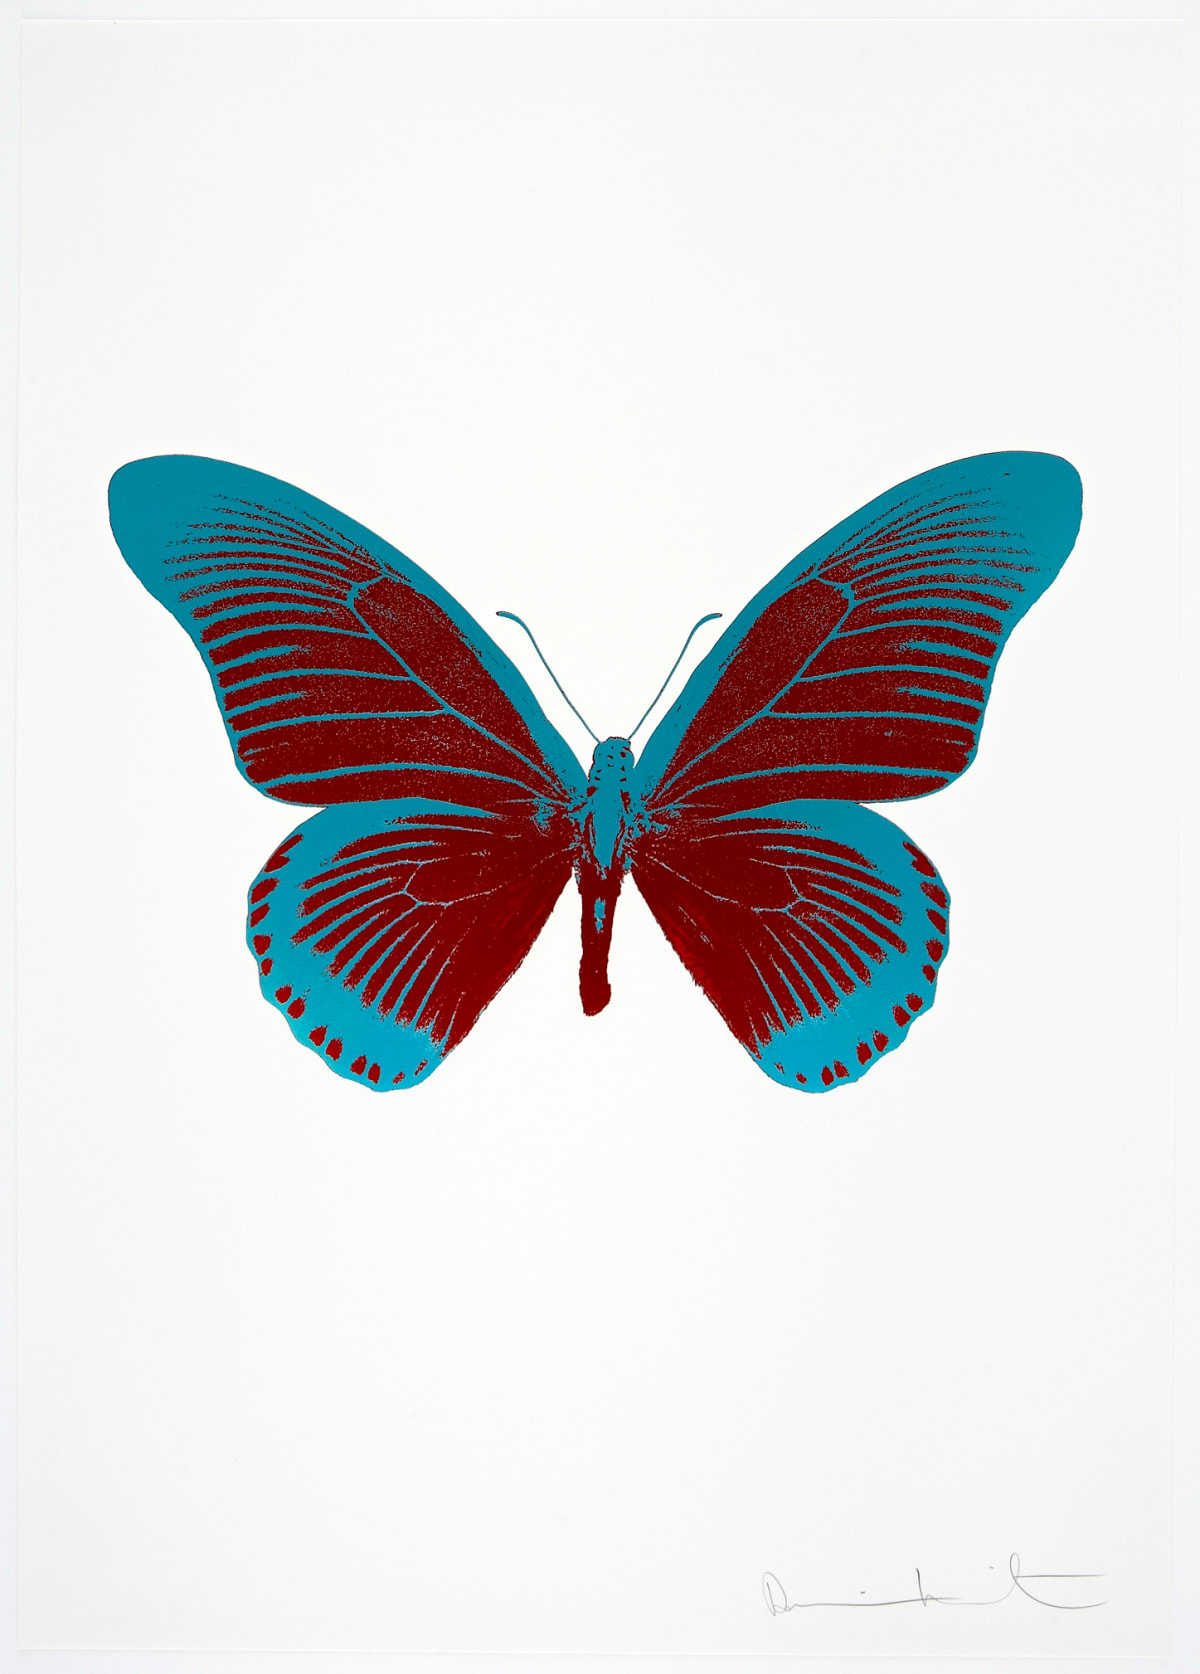 Damien Hirst The Souls IV - Chilli Red/Topaz, 2010 2 colour foil block on 300gsm Arches 88 archival paper. Signed and numbered. Published by Paul Stolper and Other Criteria 72 x 51cm OC8004 / 1418-27 Edition of 15